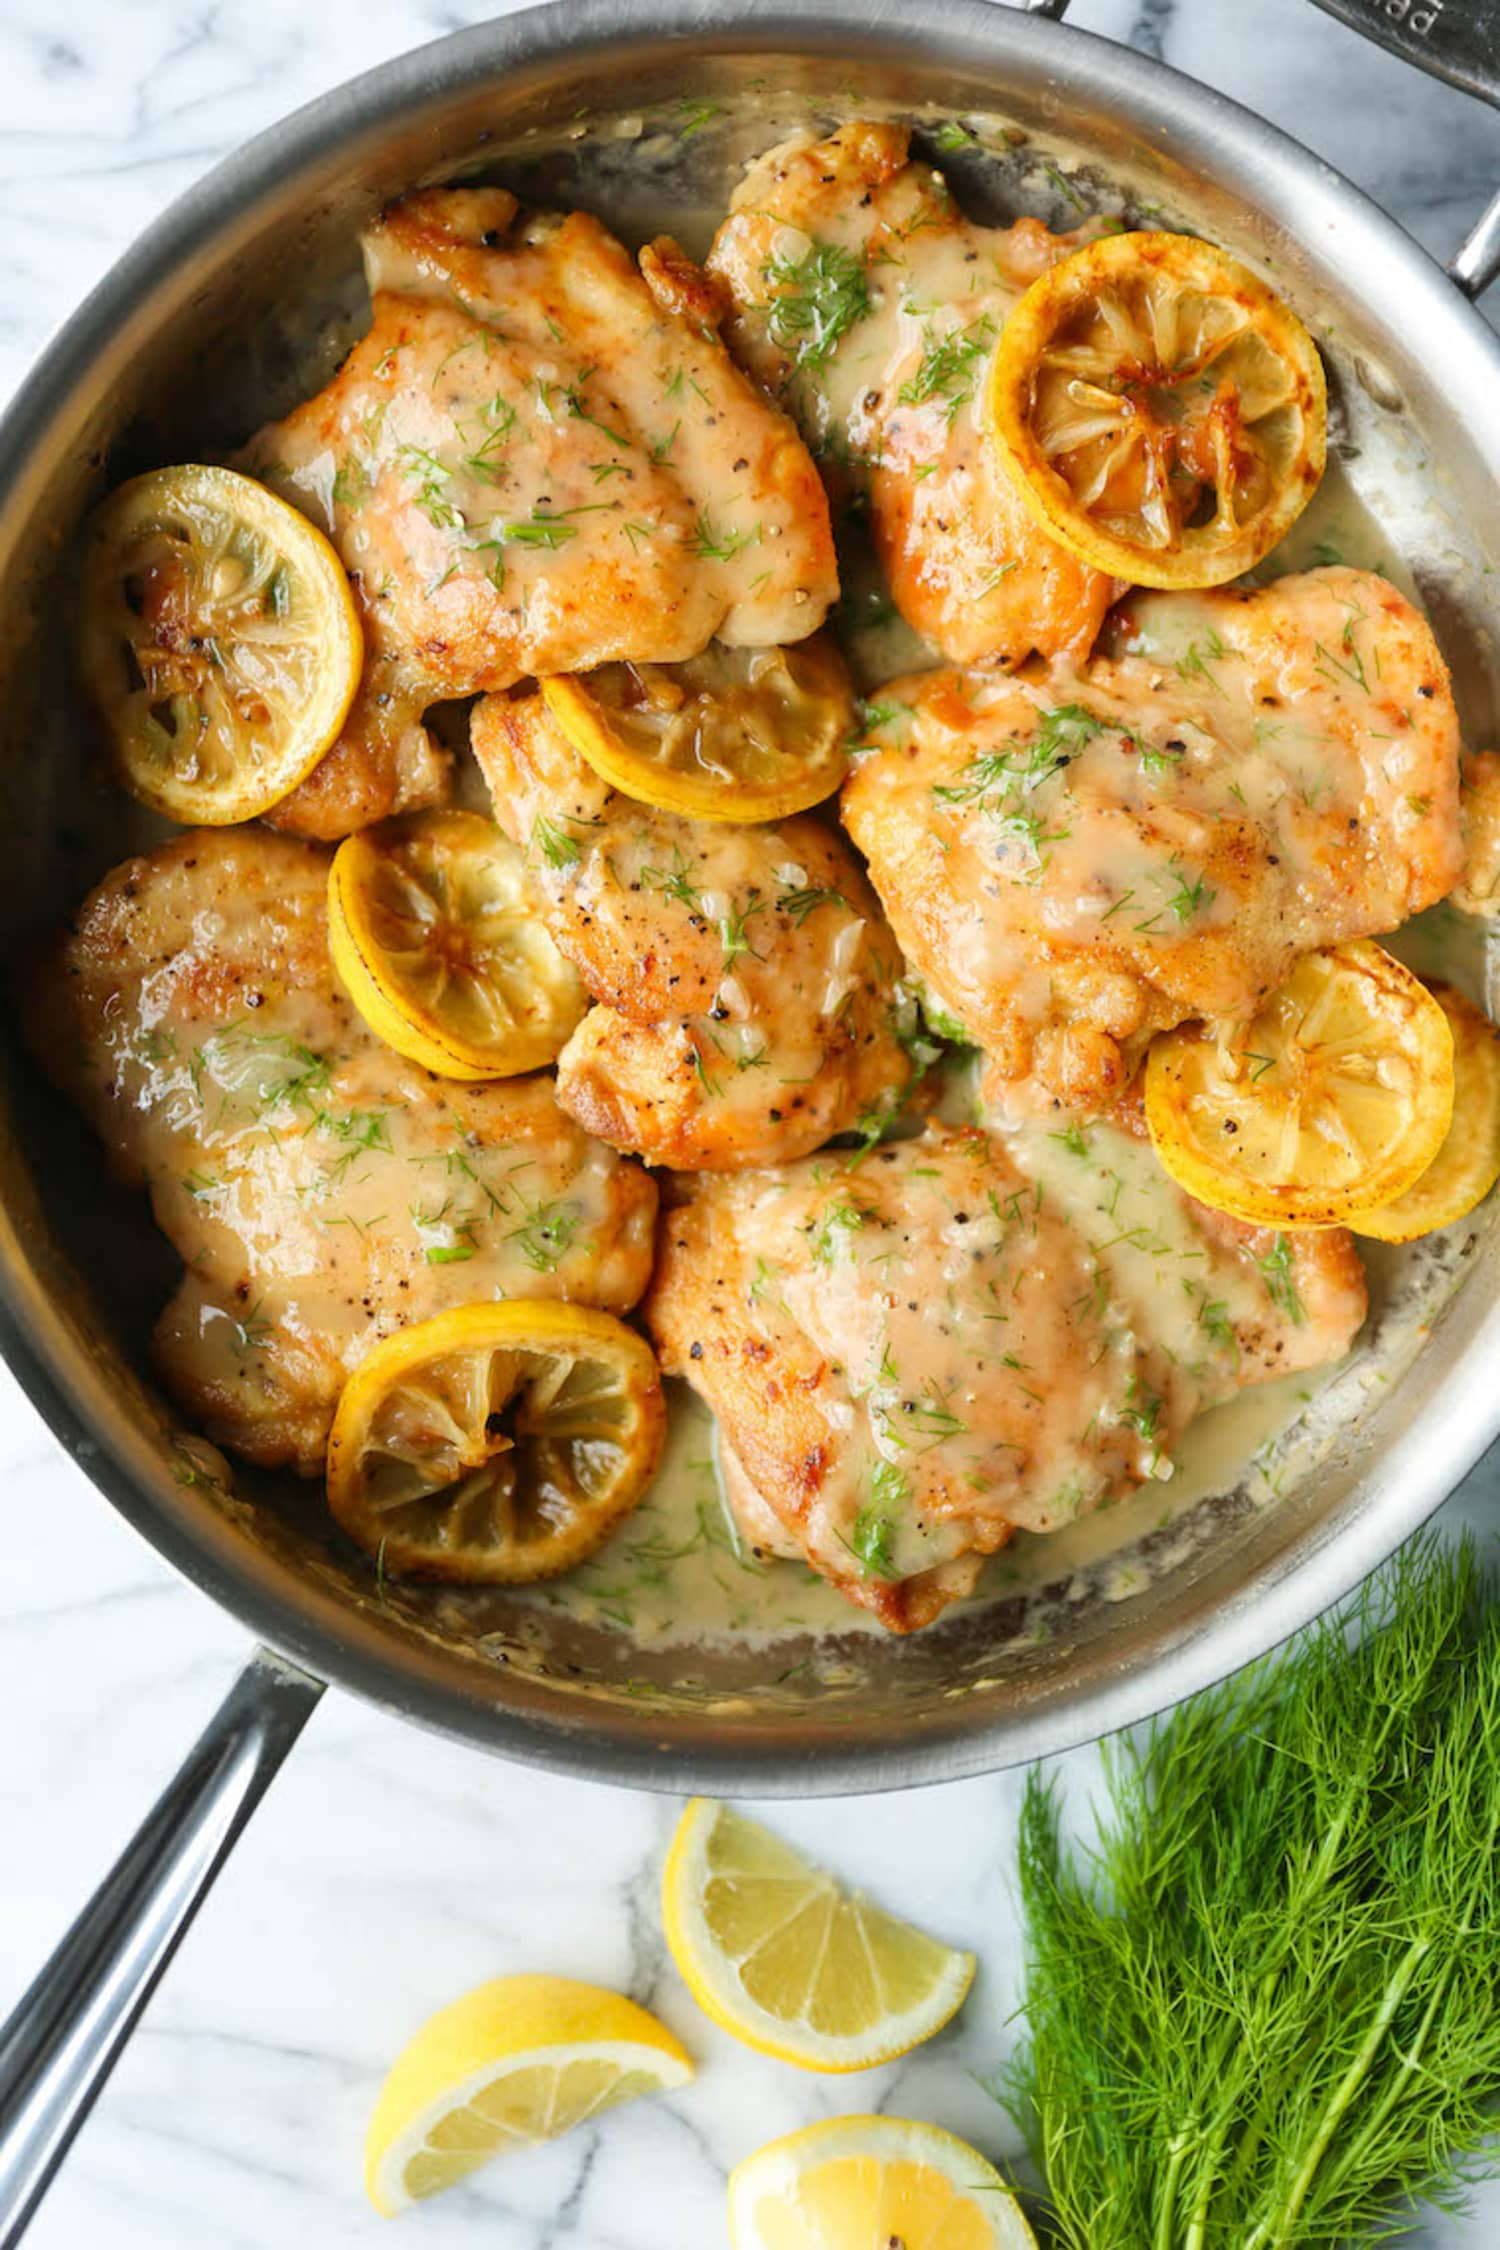 Lemon Dill Chicken Thighs Are the One-Skillet Weeknight Meal You Crave